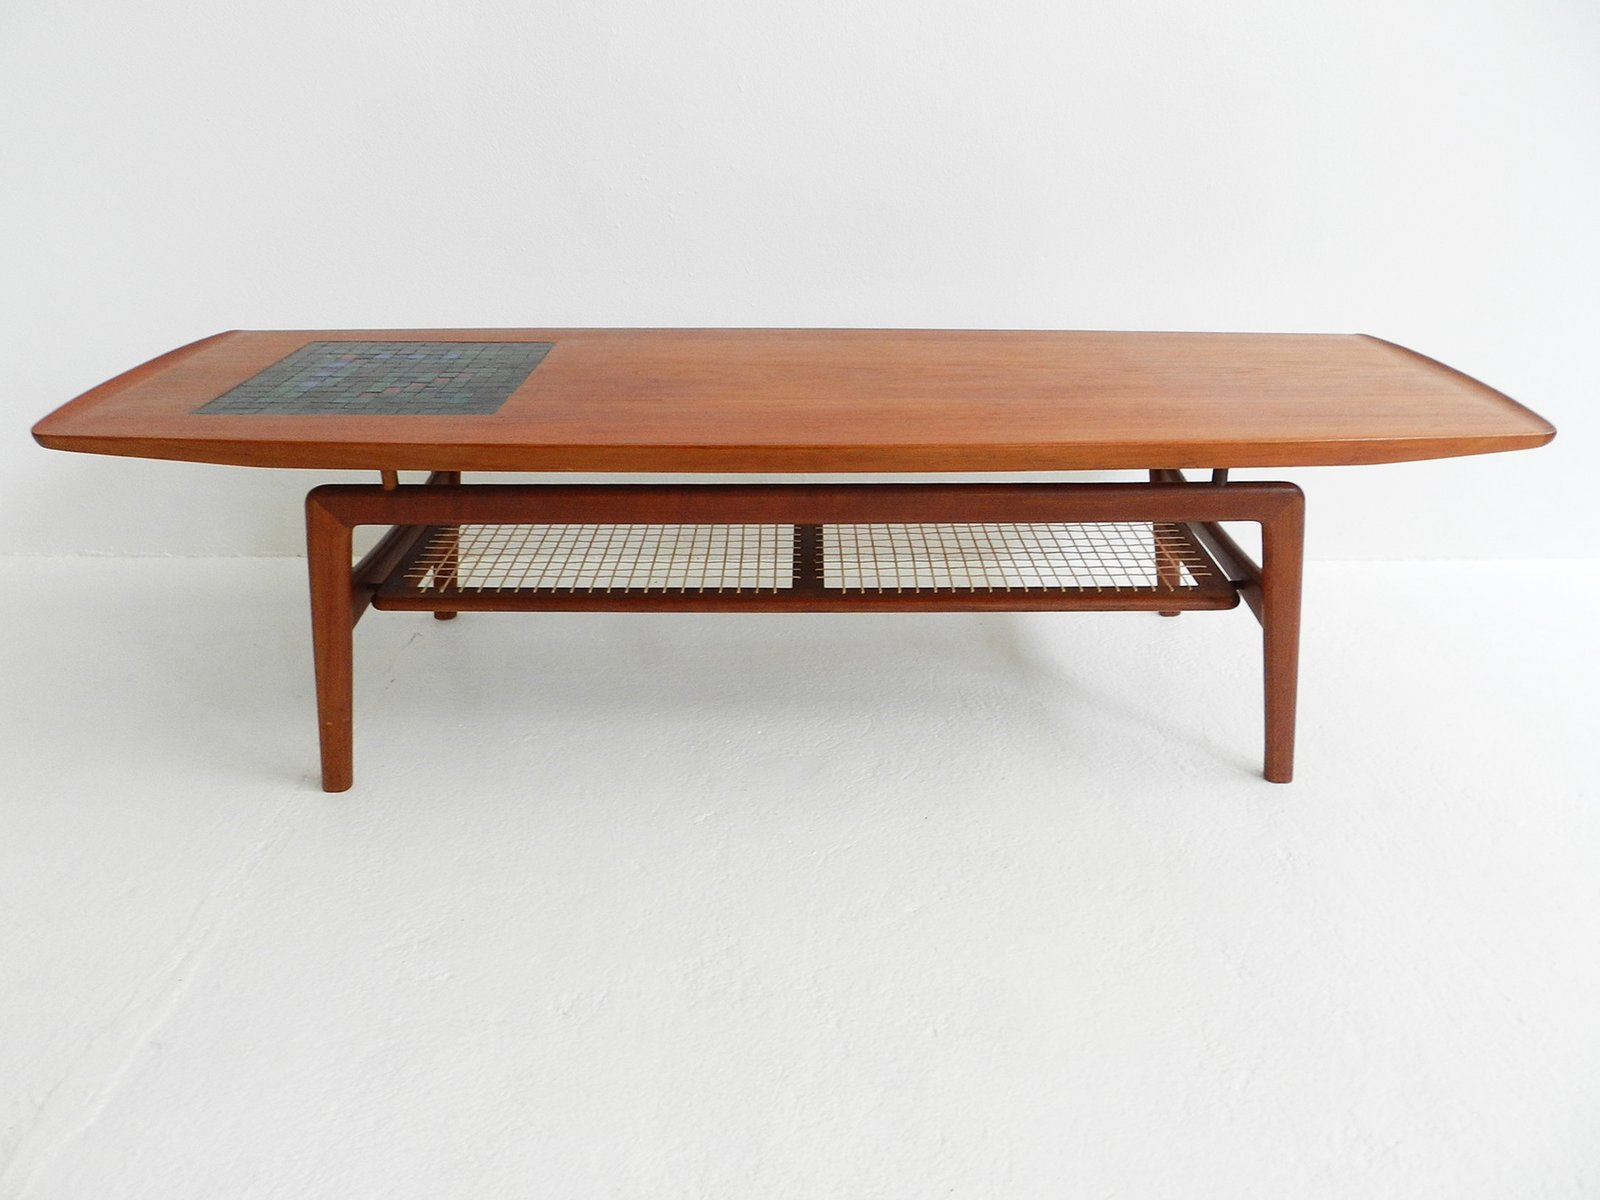 Mosaic Coffee Table by Arne Hovmand Olsen for Mogens Kold for sale